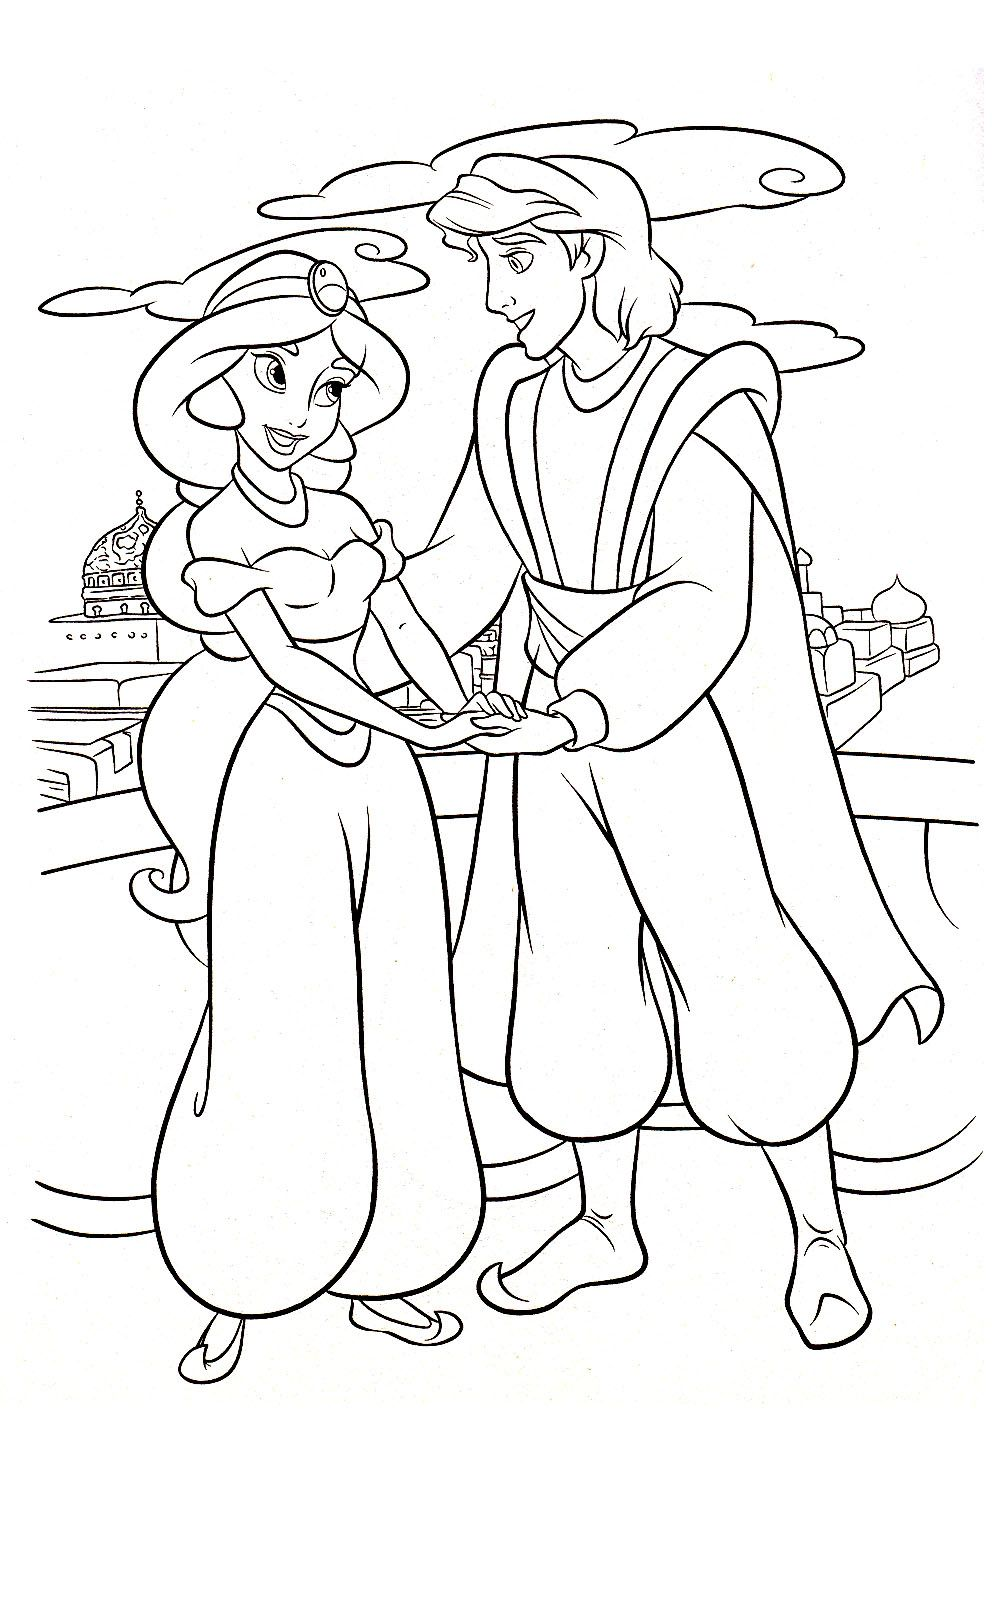 Aladdin-Coloring-Pages-Printable.jpg (1000×1600) | coloring ...